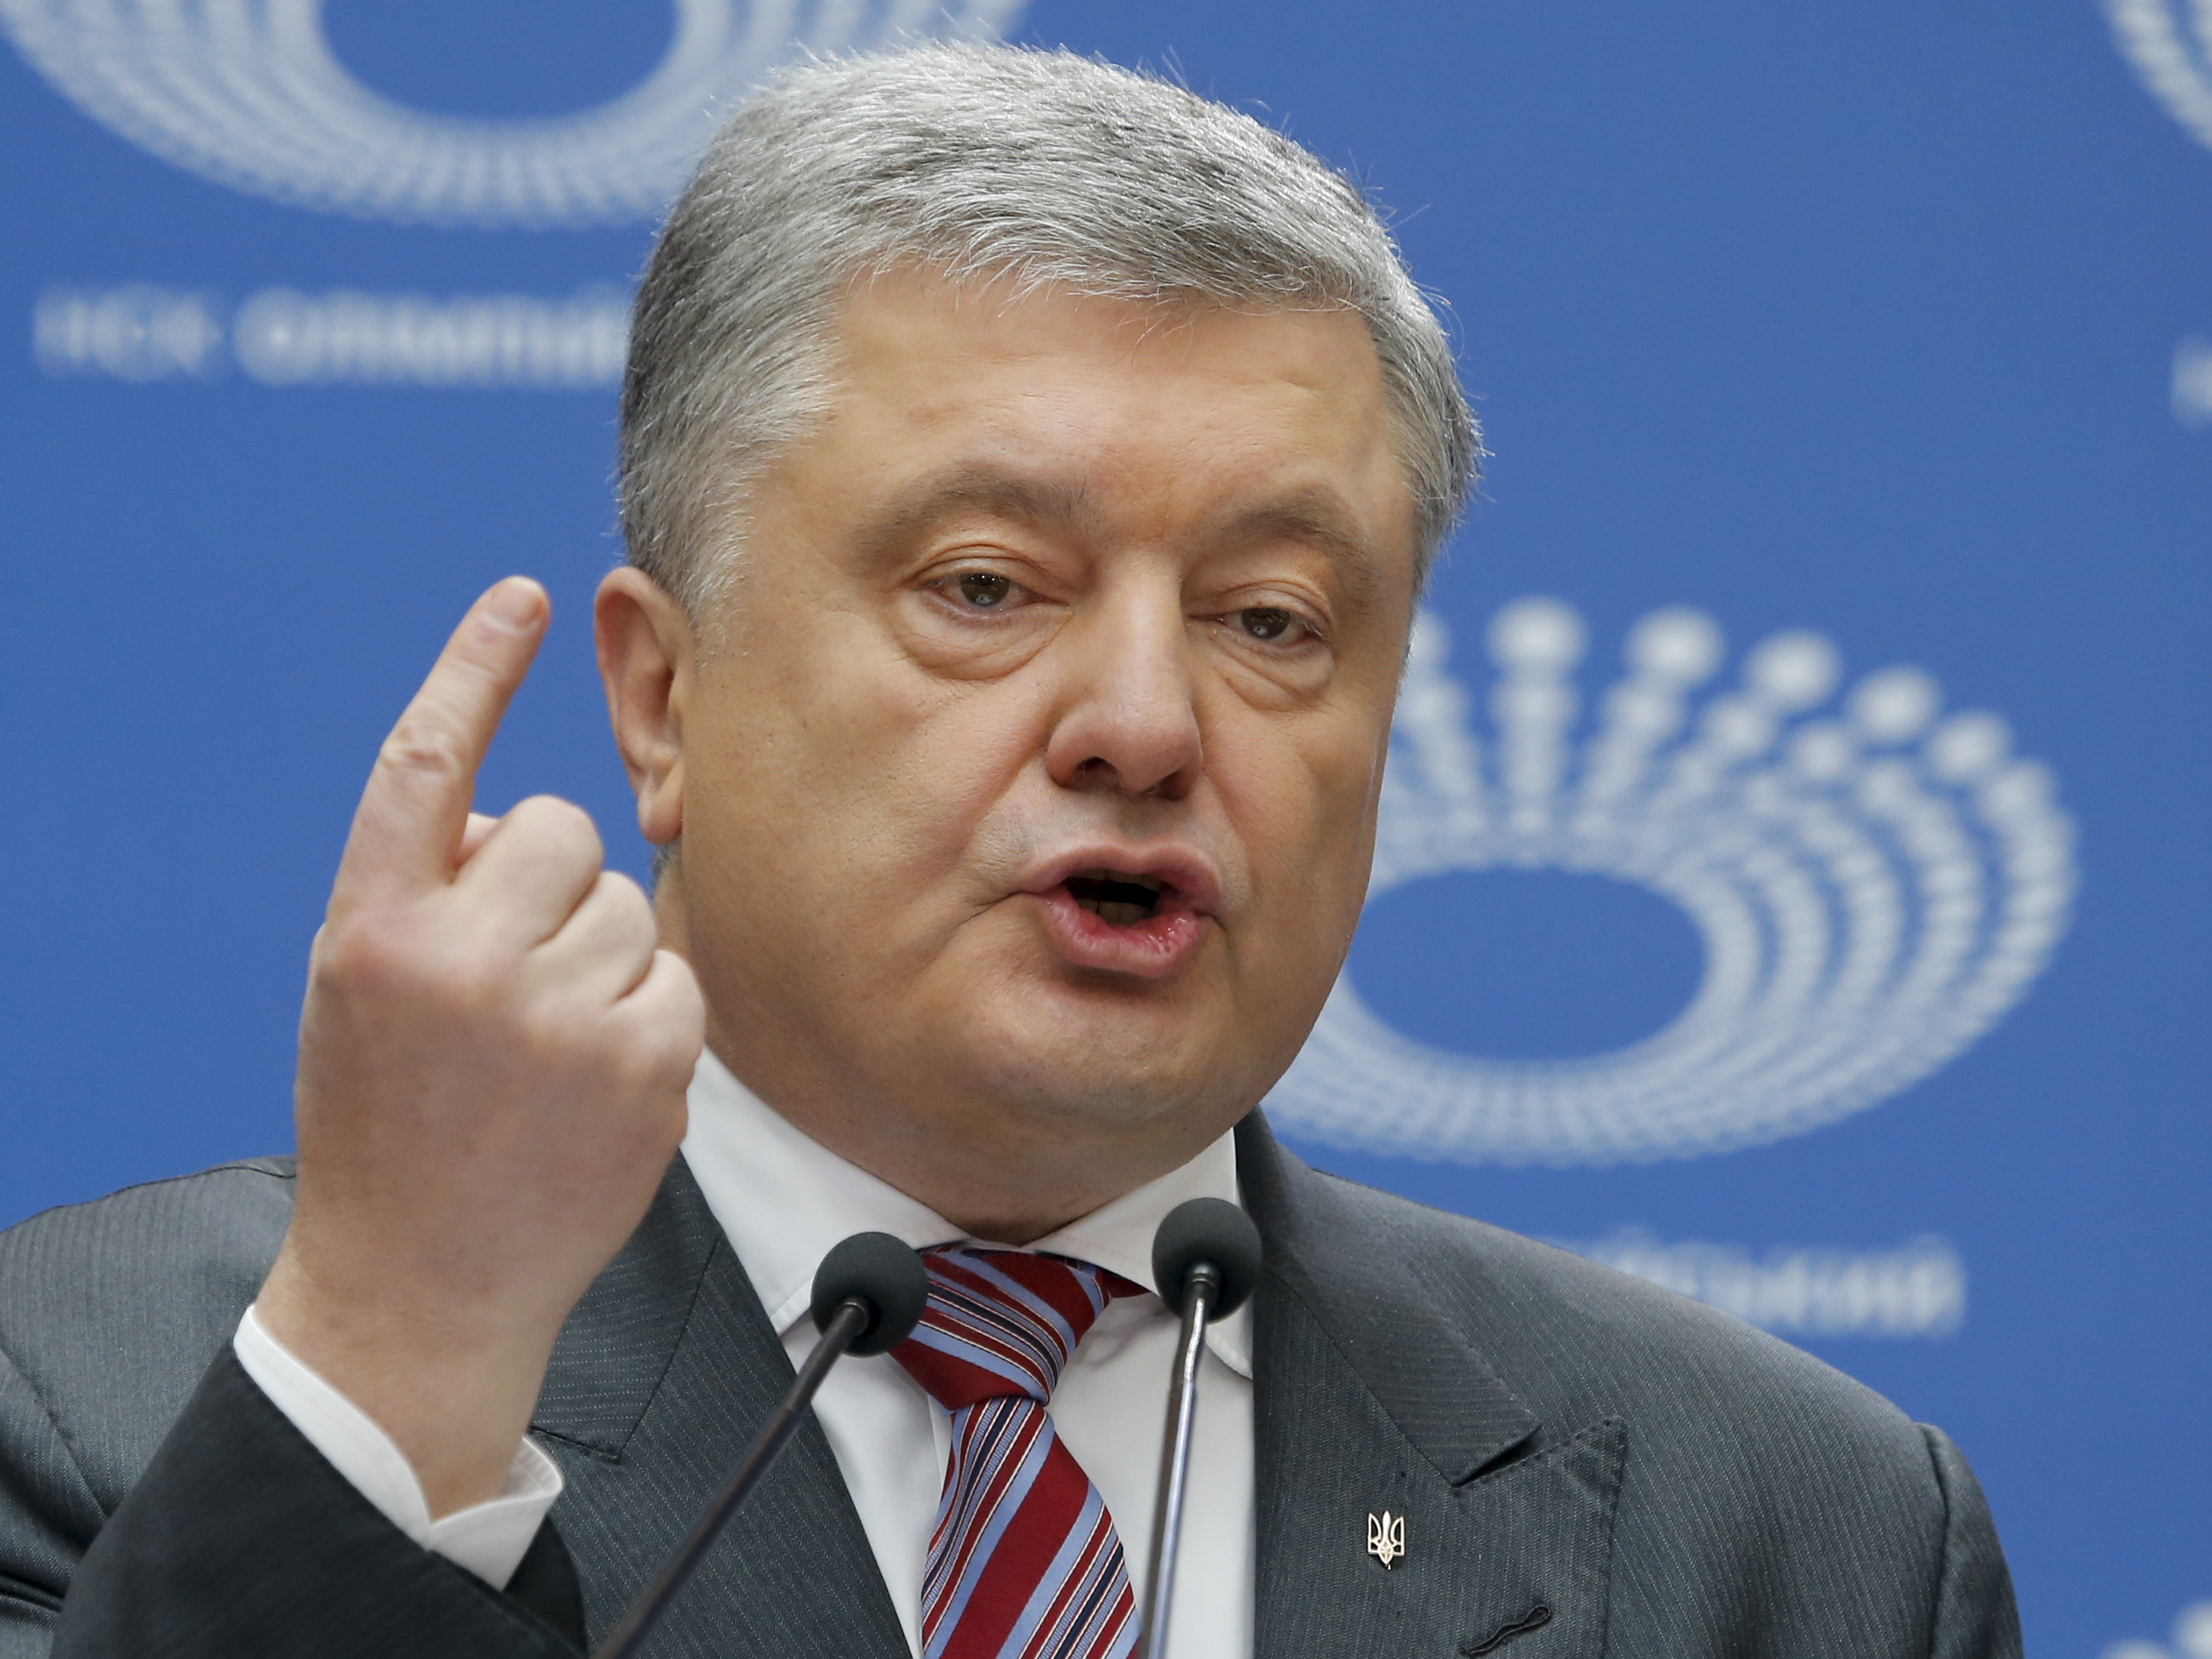 Ukrainian President Petro Poroshenko gestures as he answers to a journalist's question ahead of the presidential elections on April 21, at the Olympic stadium in Kiev, Ukraine, Sunday, April 14, 2019. With one week remaining until Ukraine's presidential election, incumbent Petro Poroshenko has come to the country's largest stadium for a proposed debate where his opponent didn't show up. (AP Photo/Efrem Lukatsky)